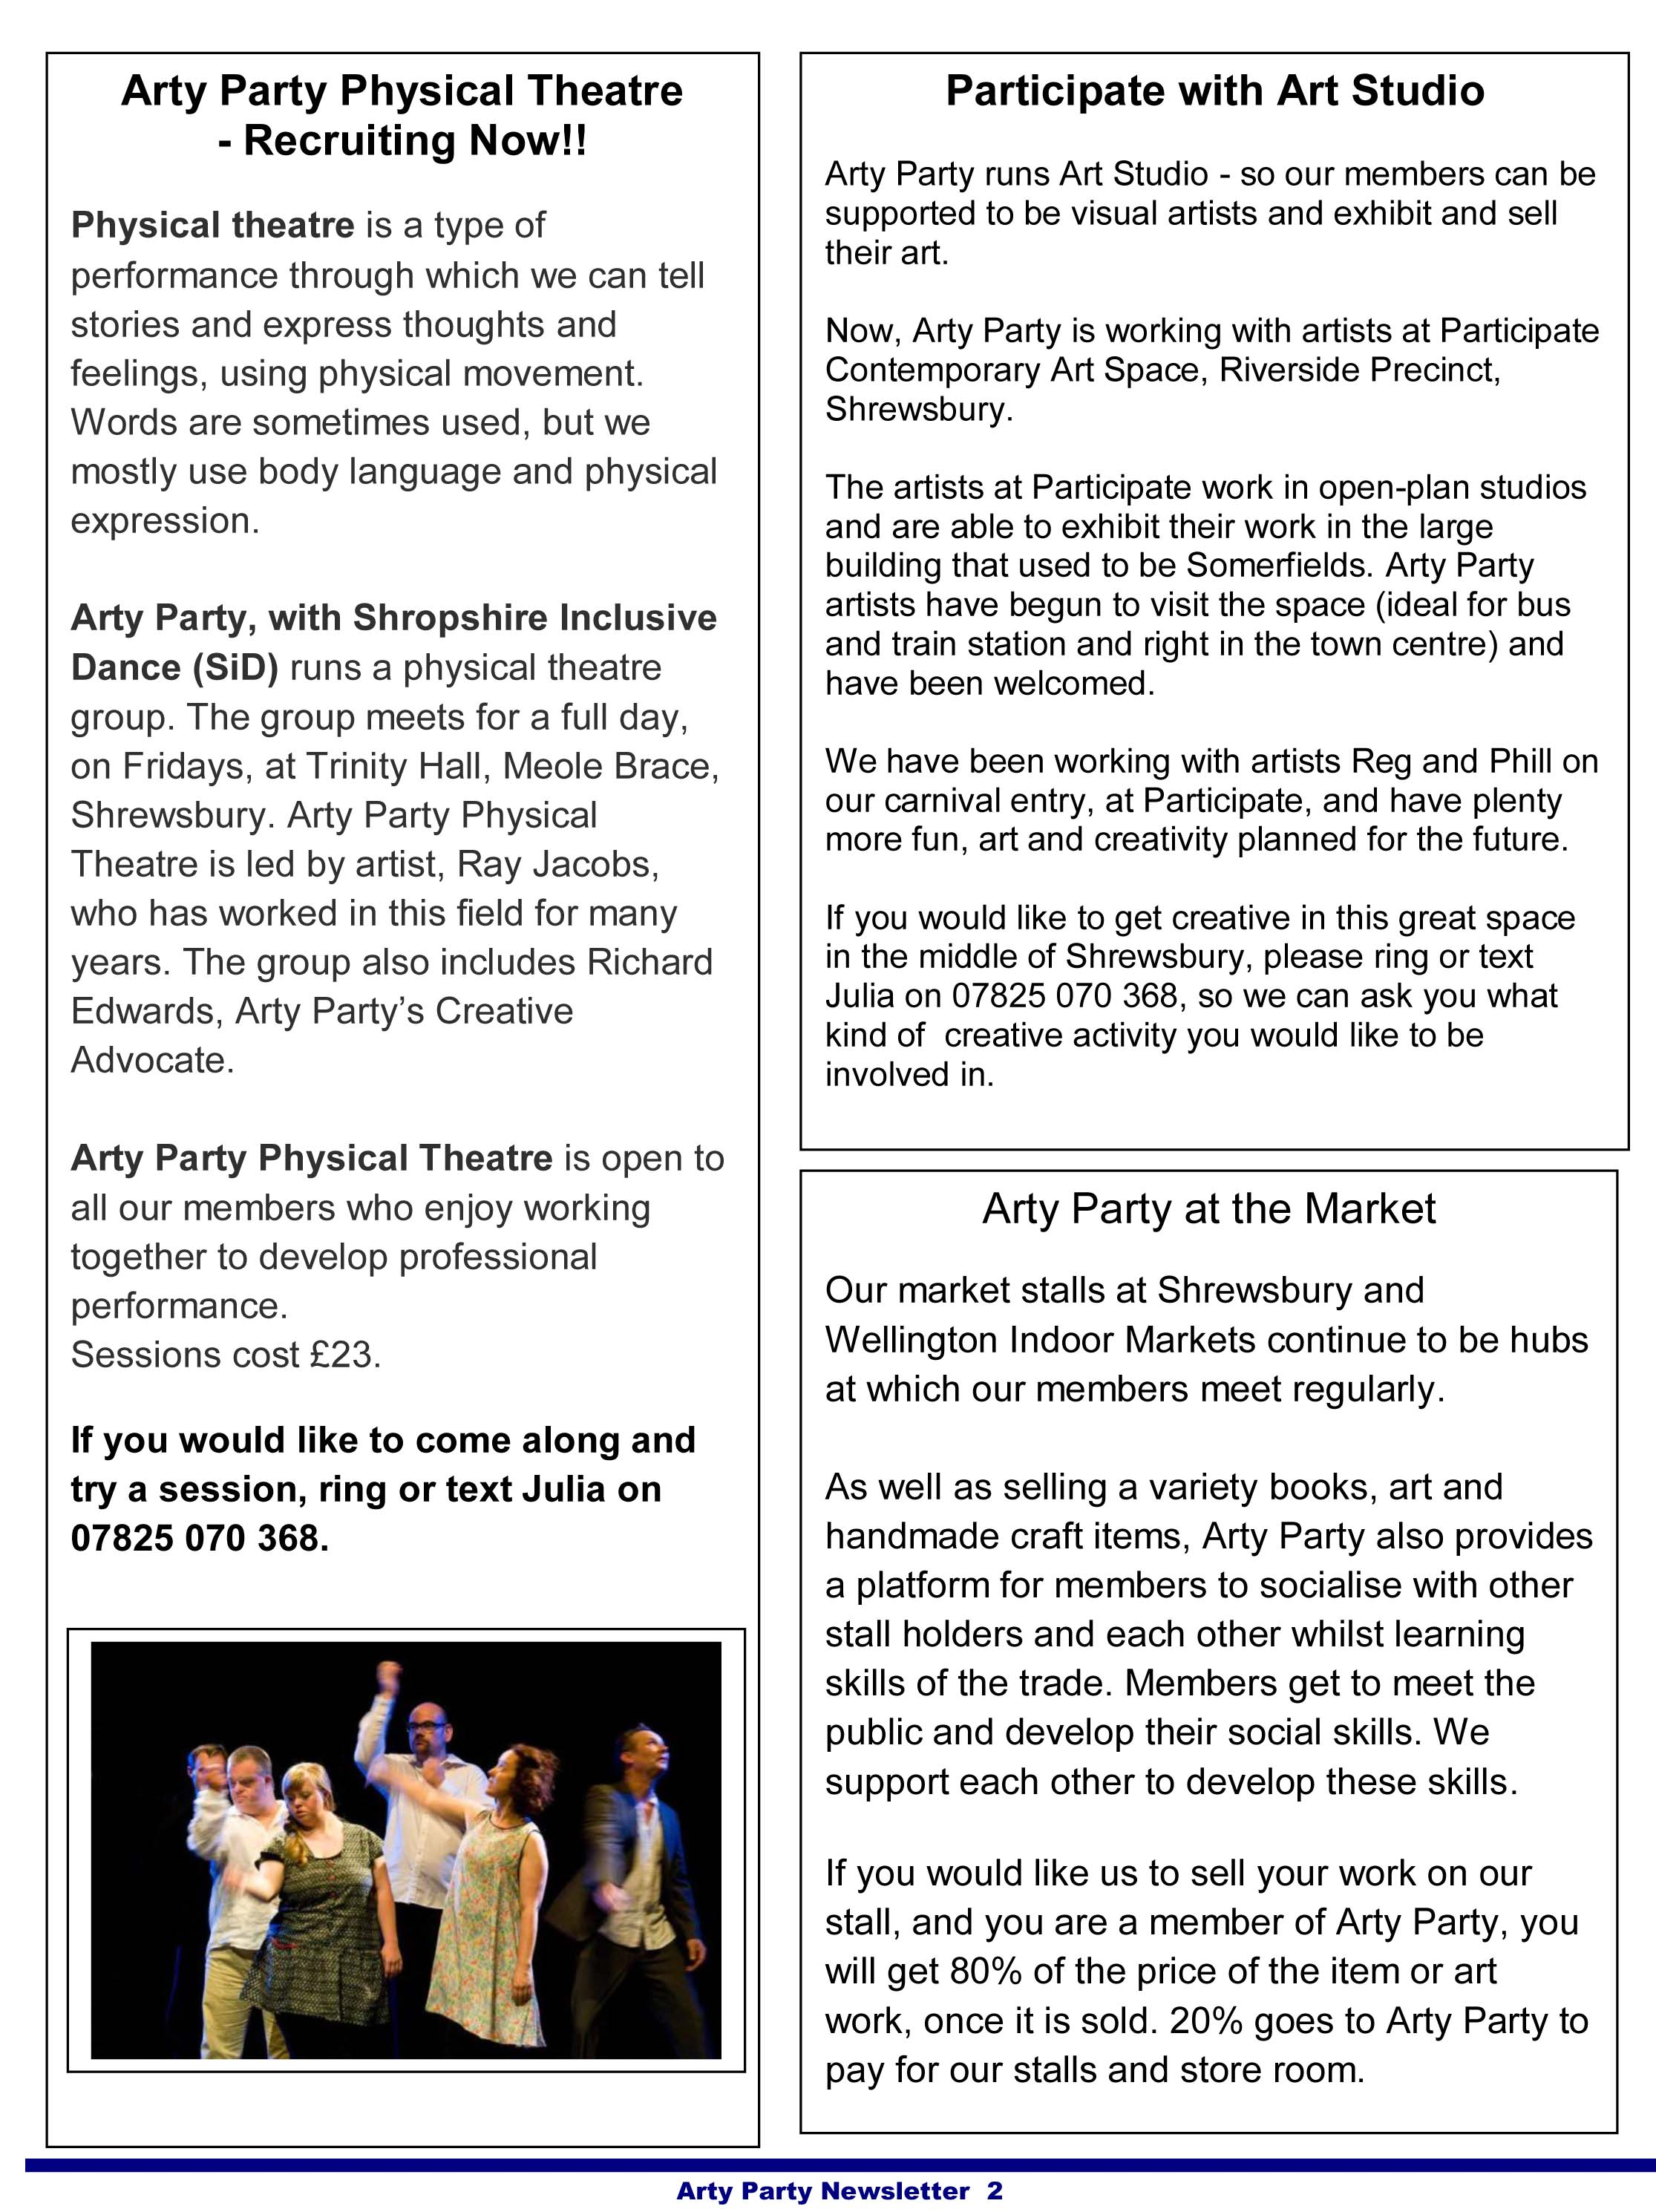 Arty Party Newsletter May 2015-2